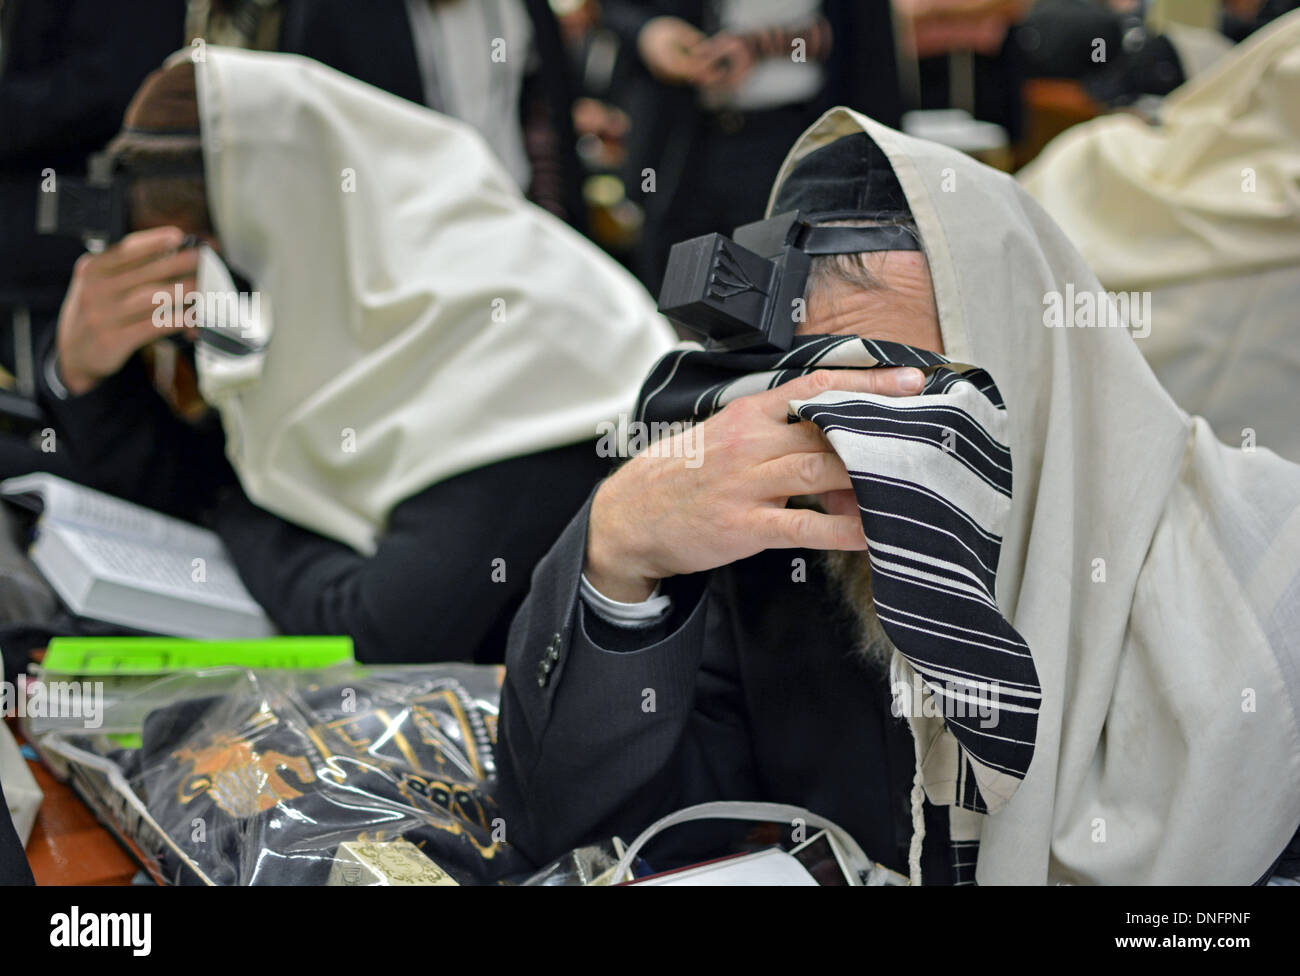 Religious Jewish men during morning prayers at Lubavitch main headquarters in the Crown Heights section of Brooklyn, New York - Stock Image